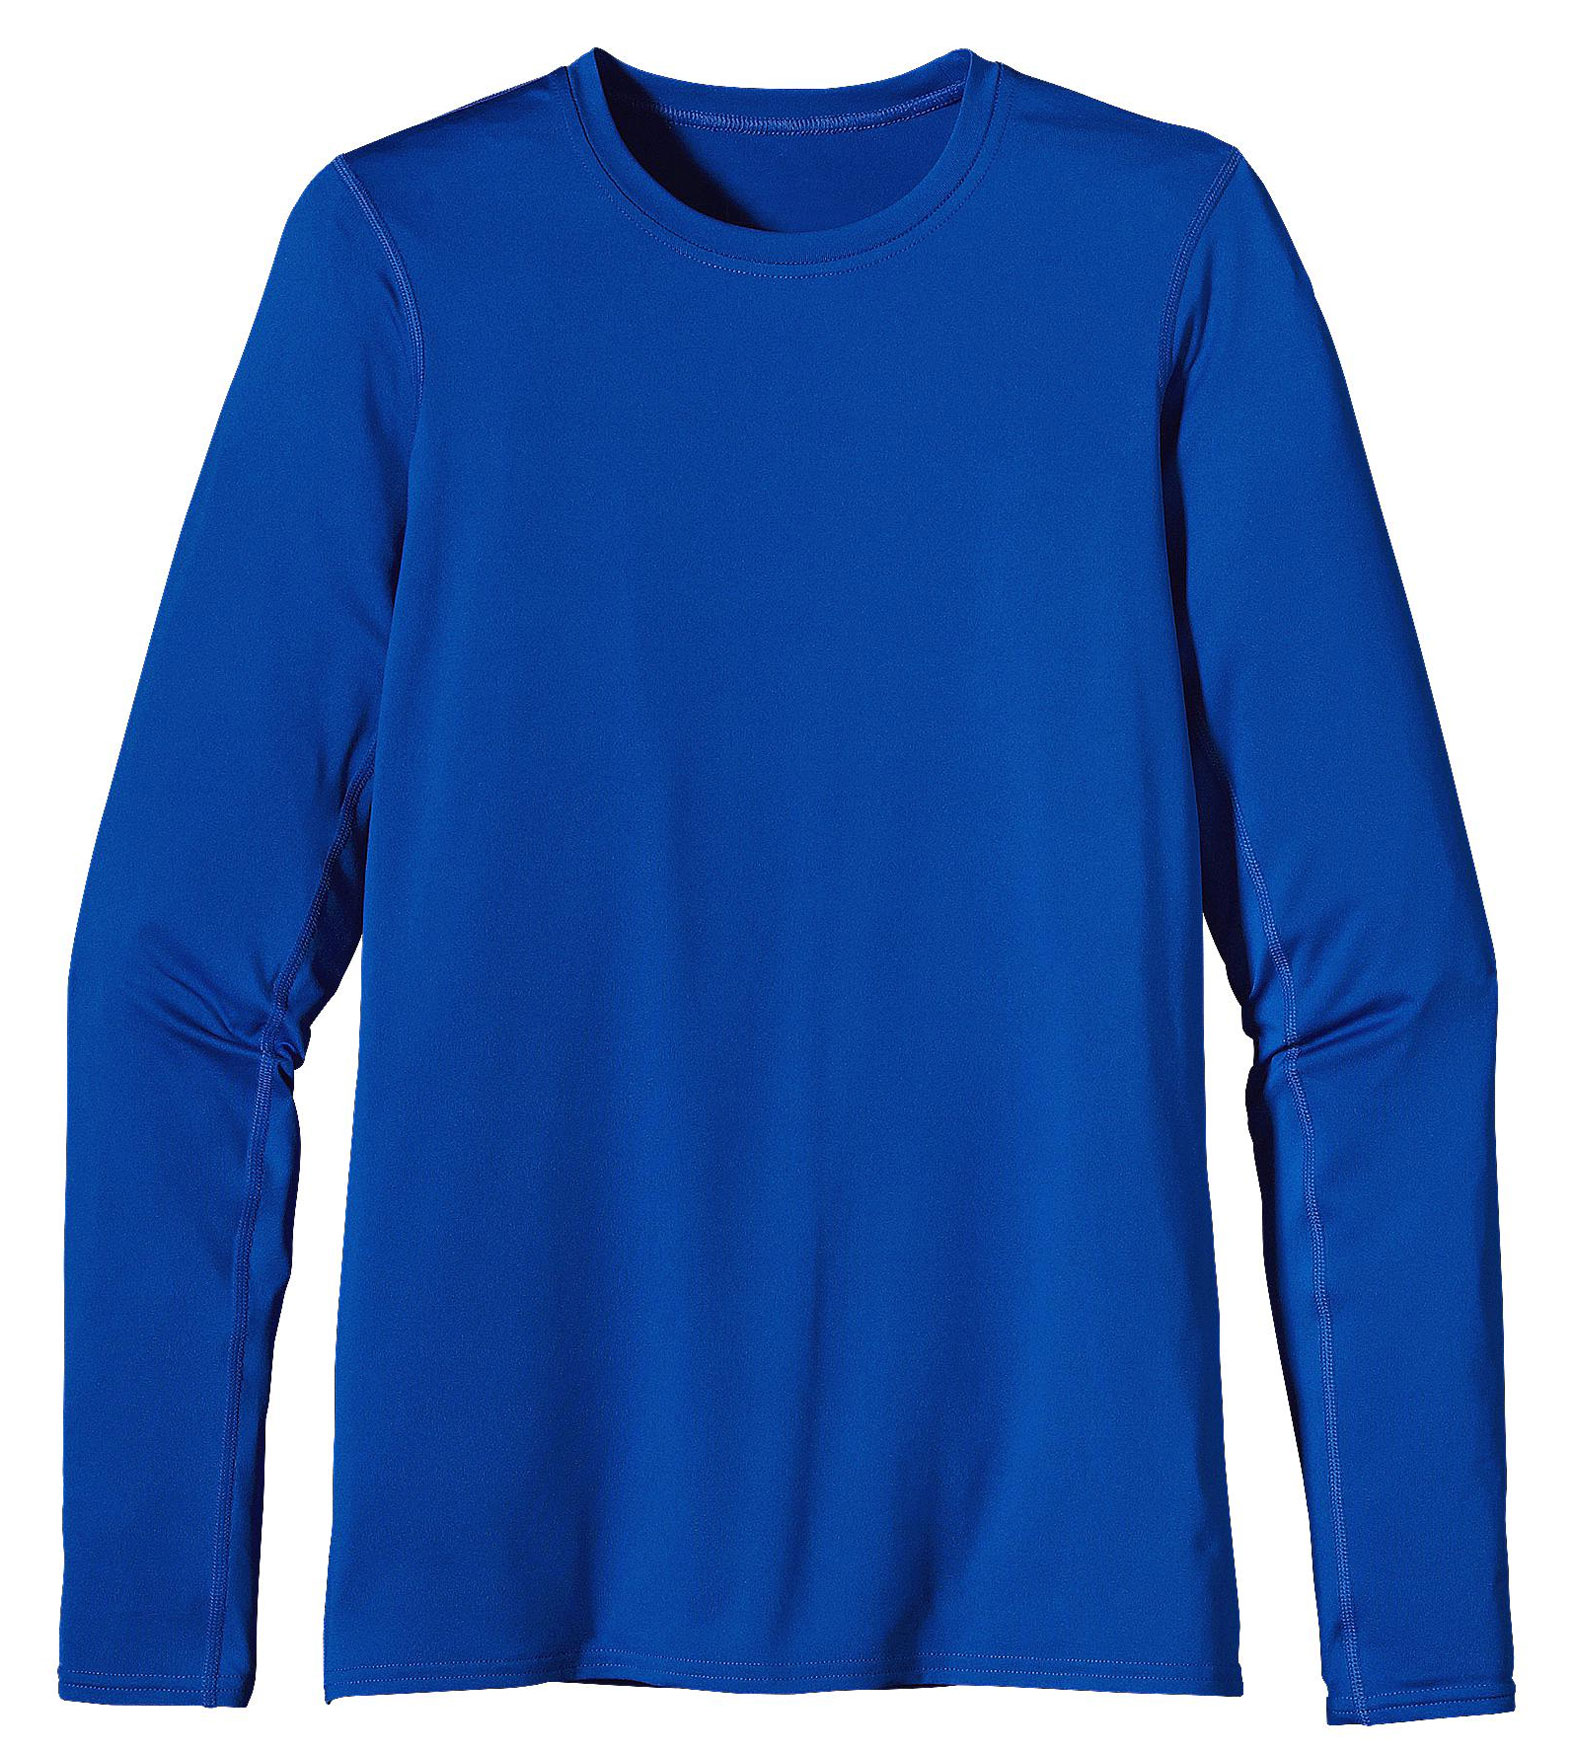 Patagonia Womens Long Sleeve Wicking Capilene® Crew Neck T-shirt